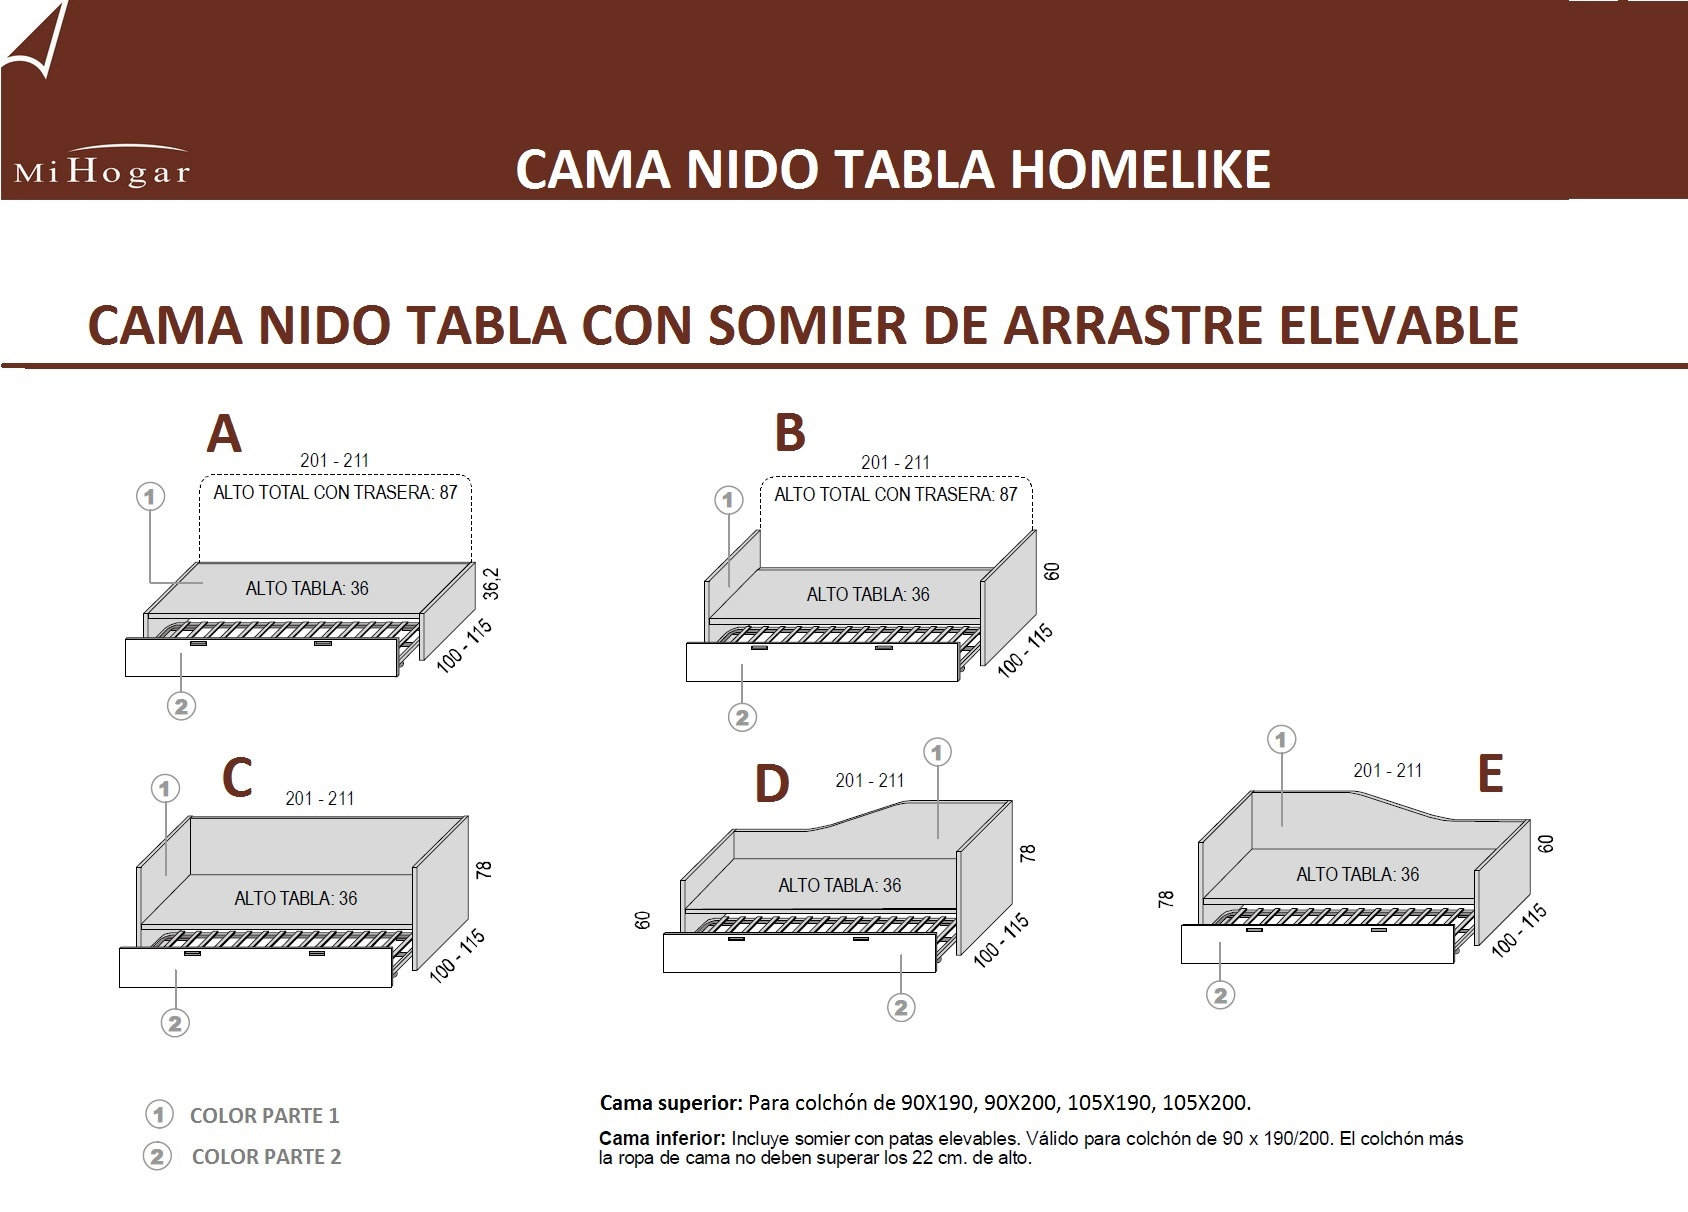 Cama nido tabla homelike muebles mi hogar for Medidas de king size y queen size